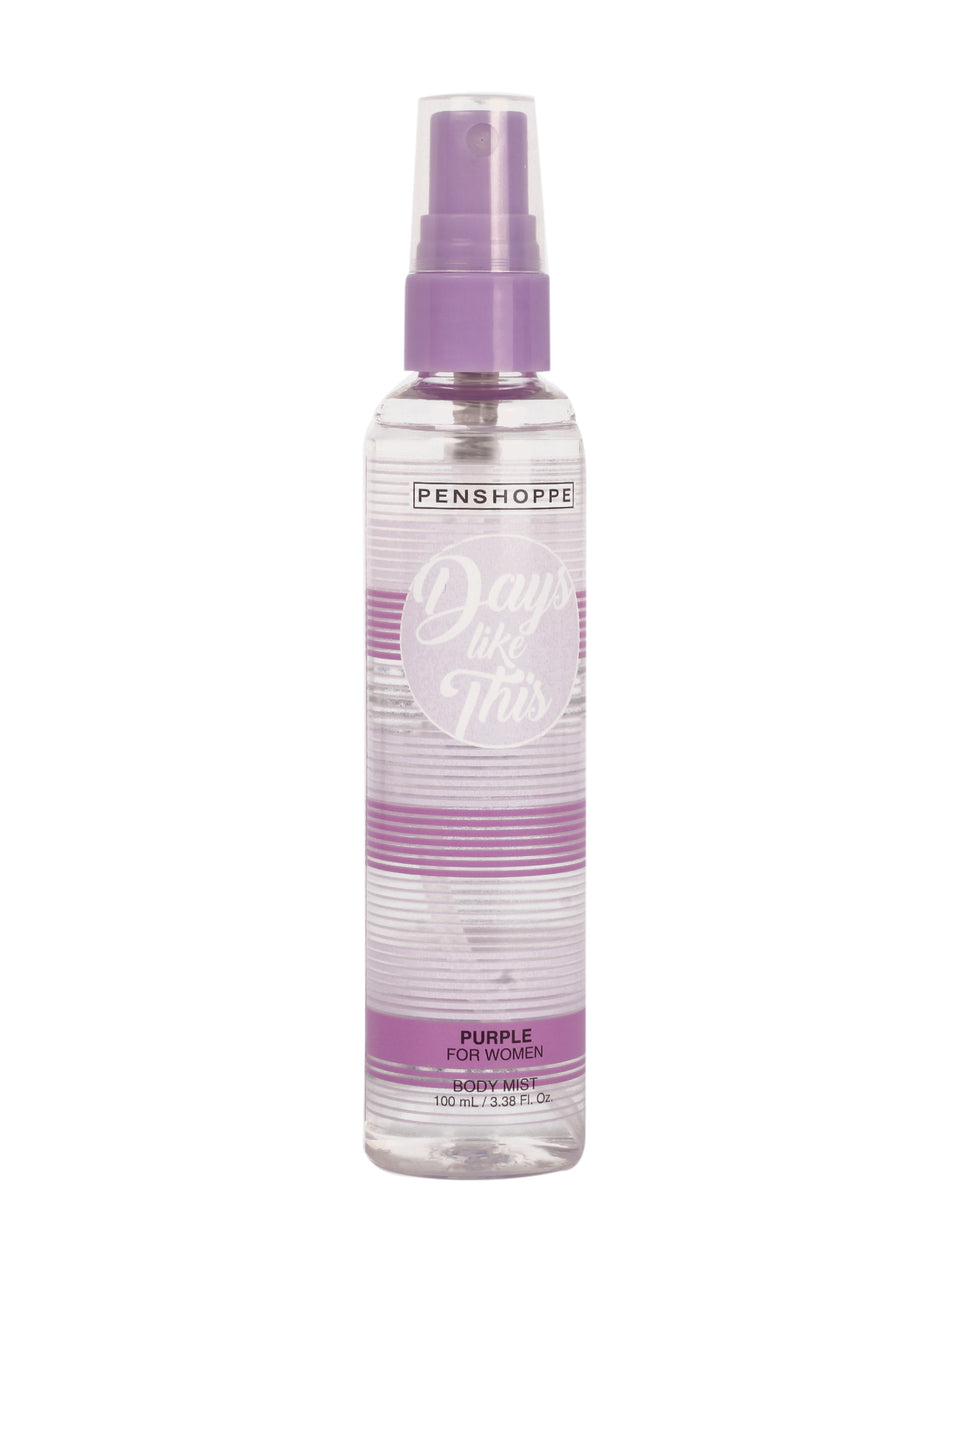 Penshoppe Days Like This Purple Body Spray for Women 100ML